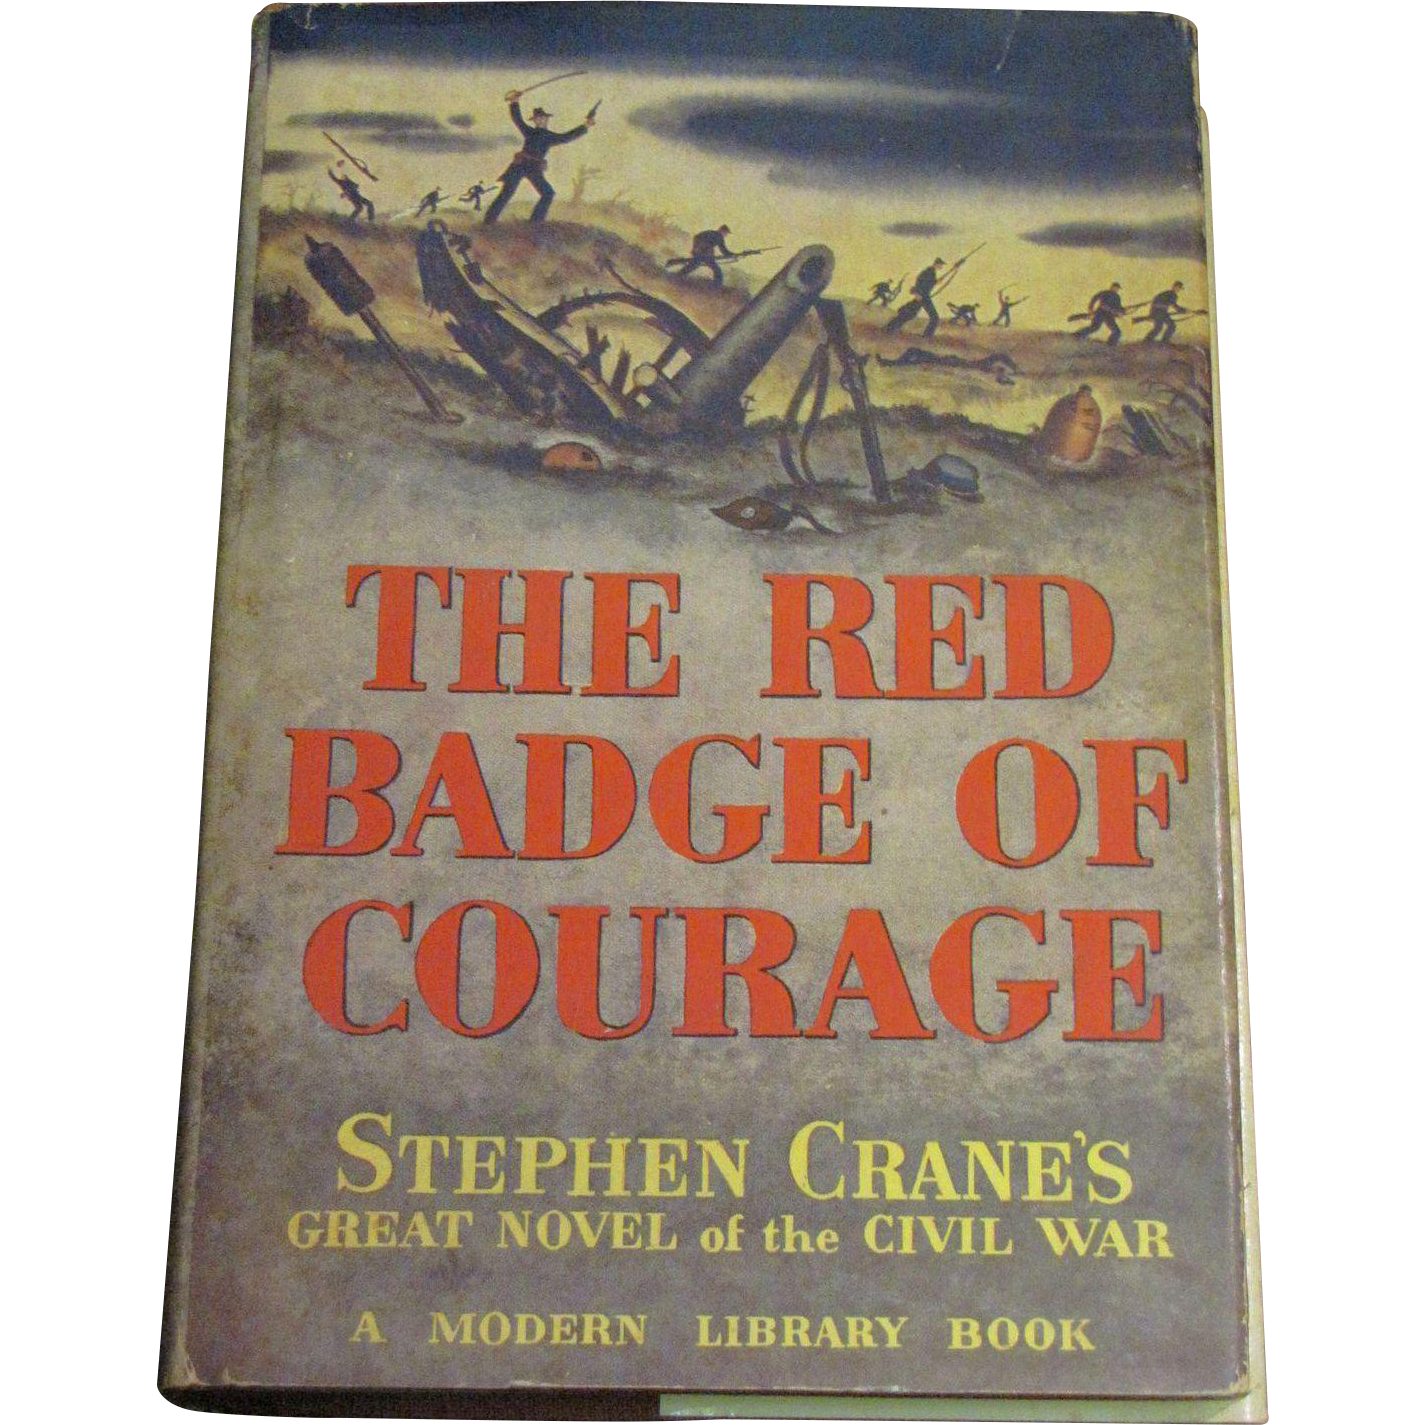 henrys view of war in the red badge of courage a novel by stephen crane The red badge of courage is an impressionistic novel by stephen crane about the meaning of courage, as it is narrated by henry fleming, a recruit in the american civil war.